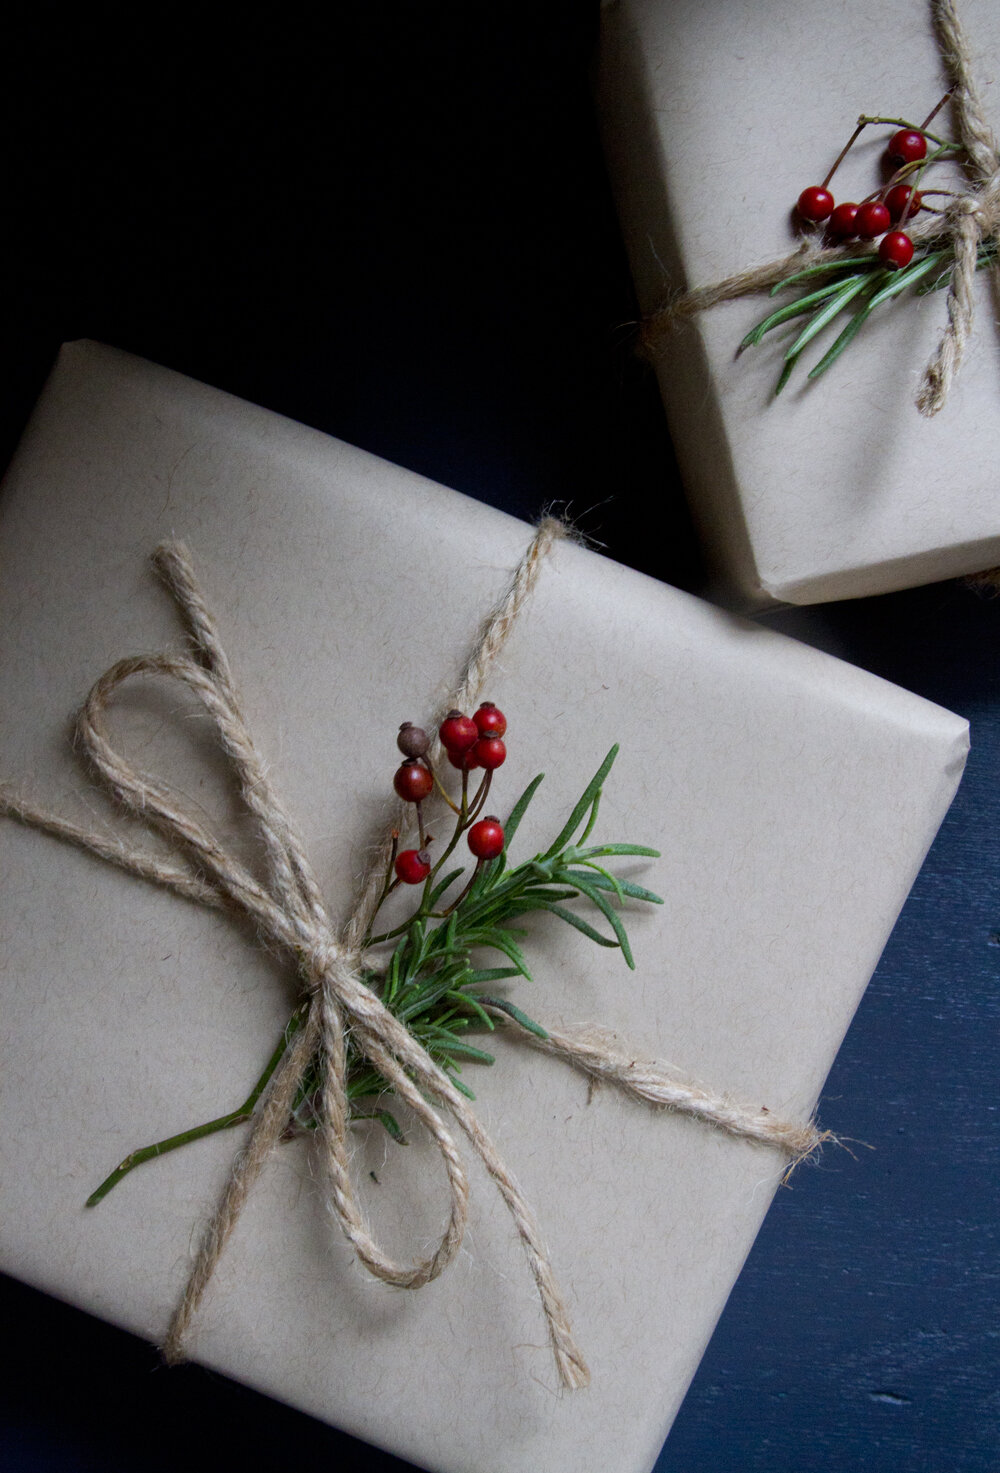 holiday gifts, two ways | reading my tea leaves